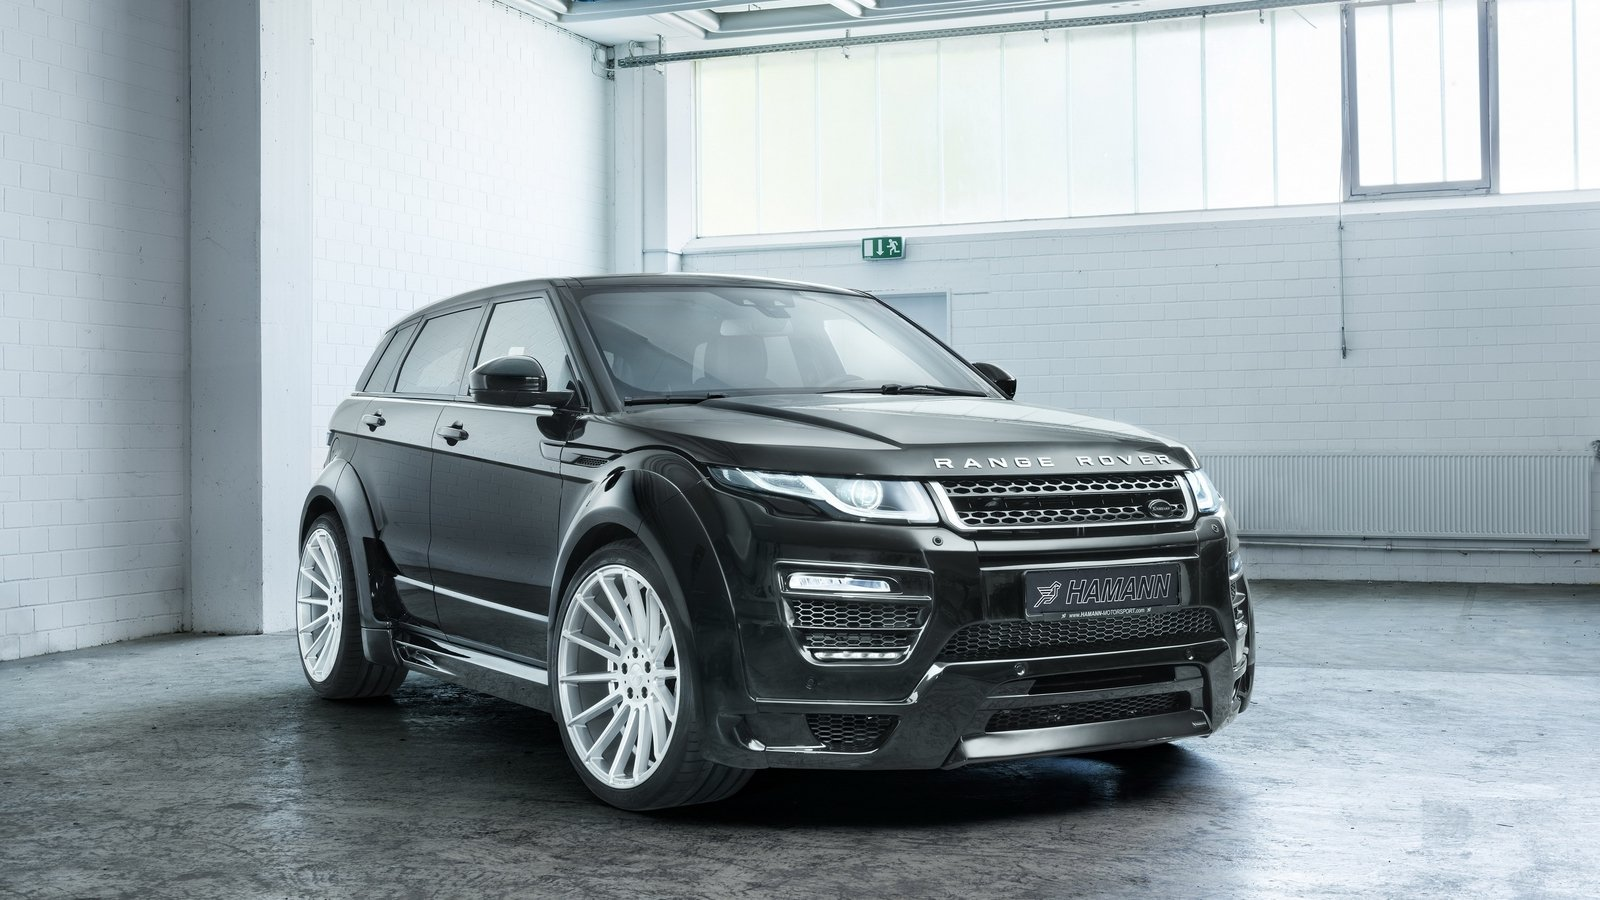 2016 range rover evoque by hamann review gallery top speed. Black Bedroom Furniture Sets. Home Design Ideas